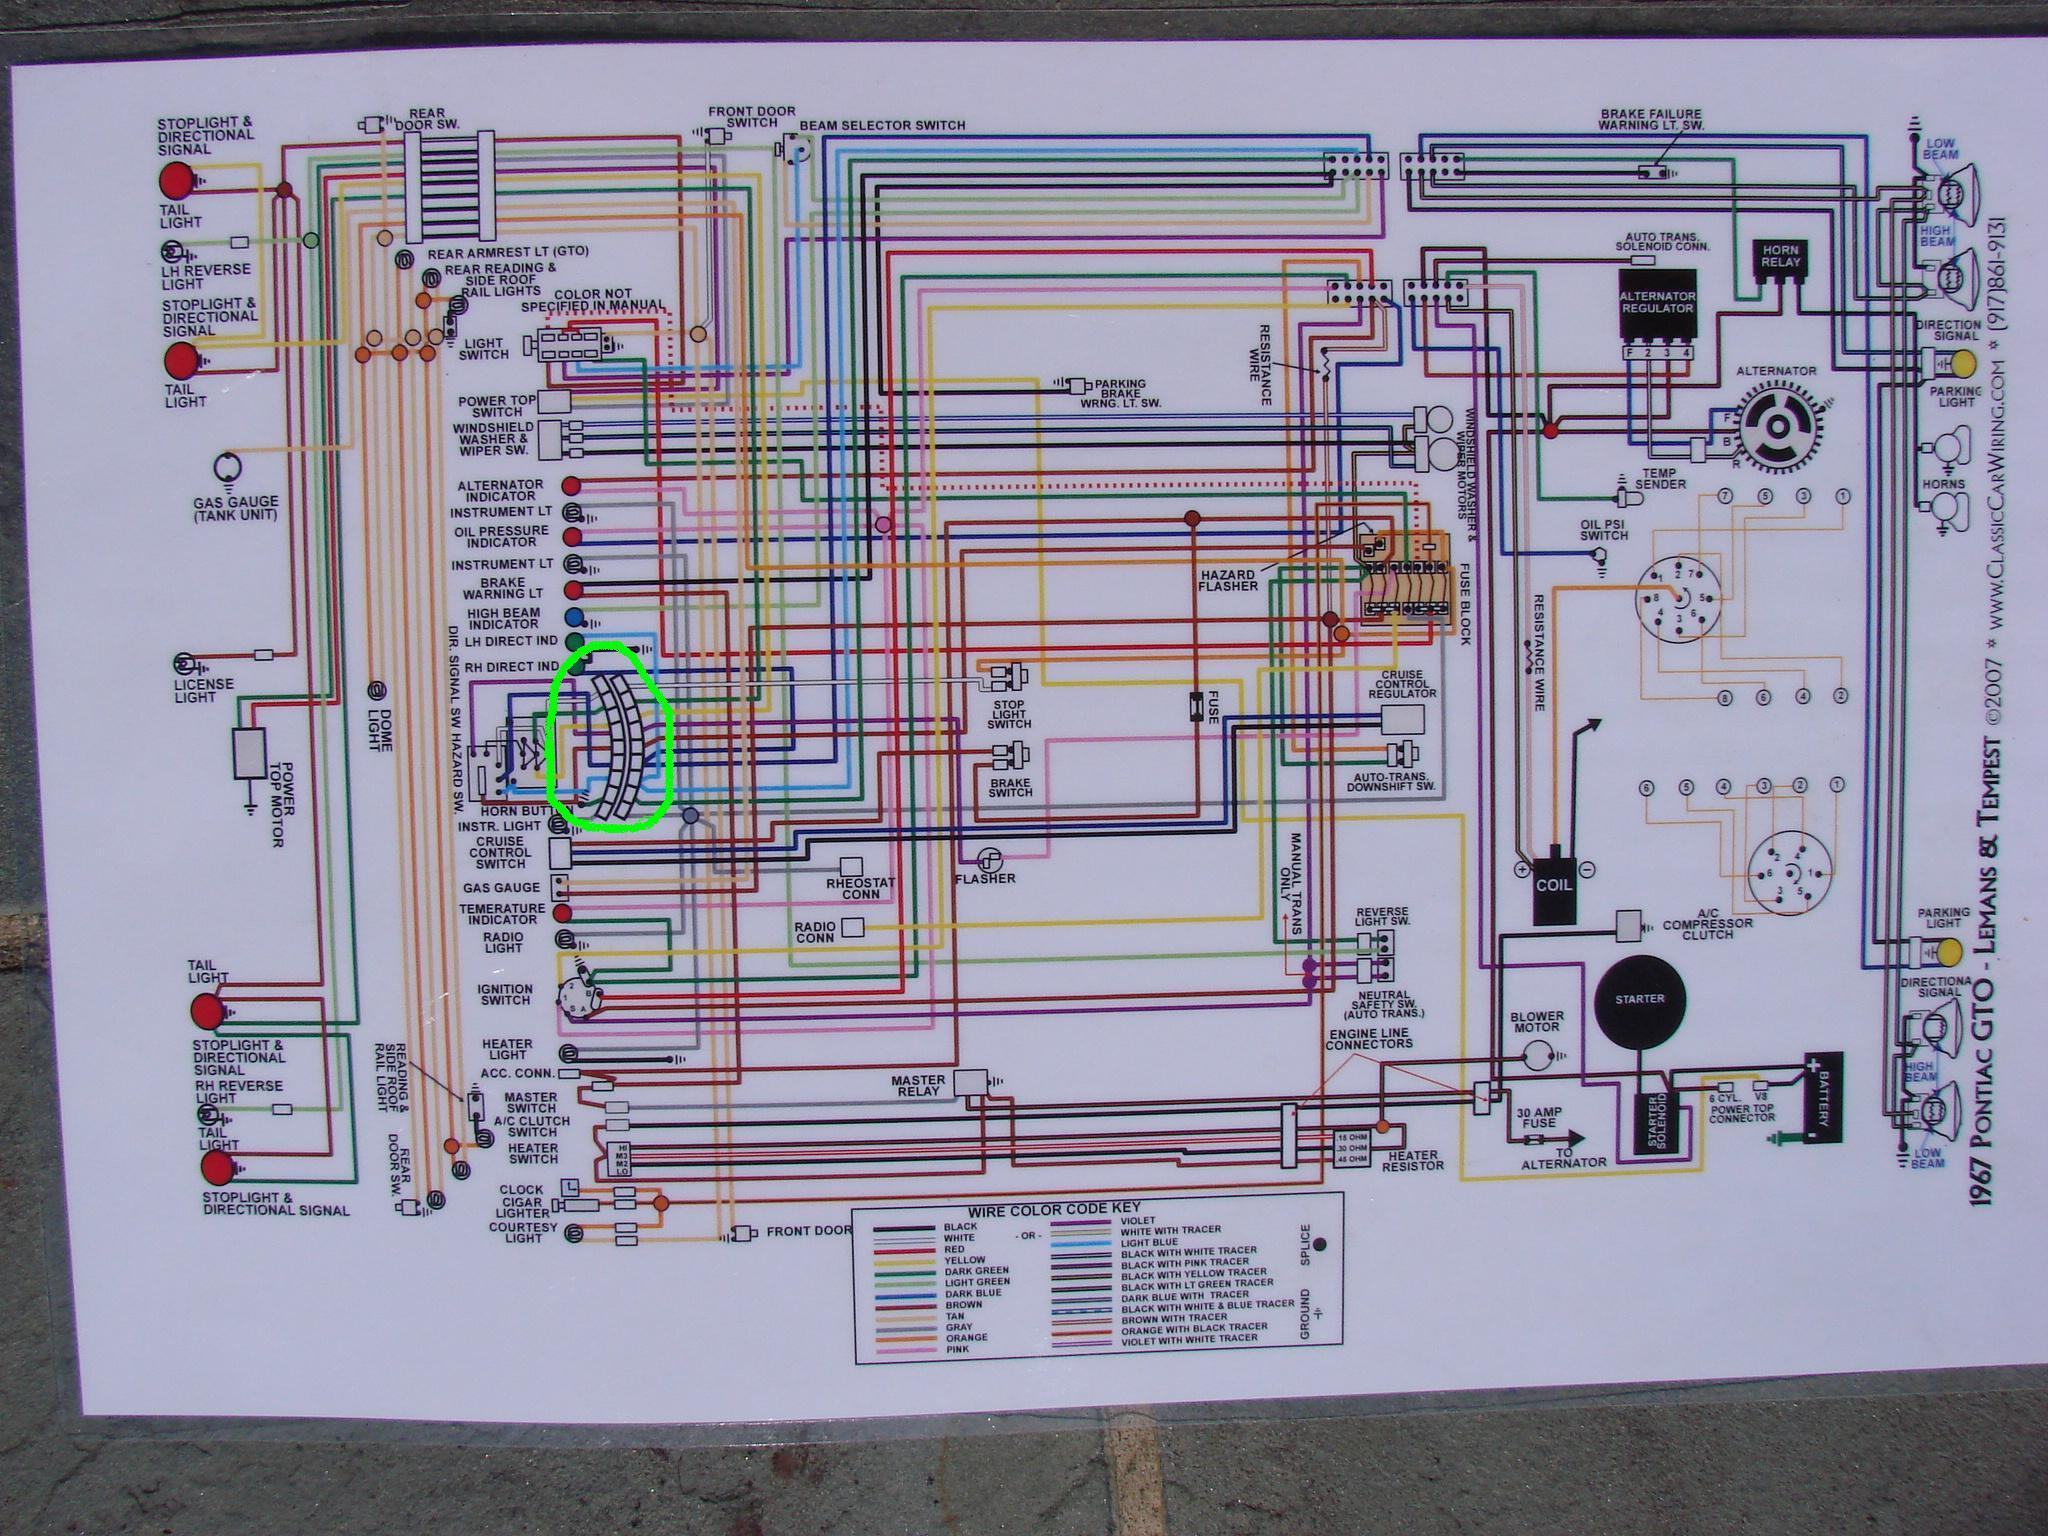 1968 Chevelle Wiring Diagrams Electrical Wiring – 1969 Chevelle Wiring Diagram